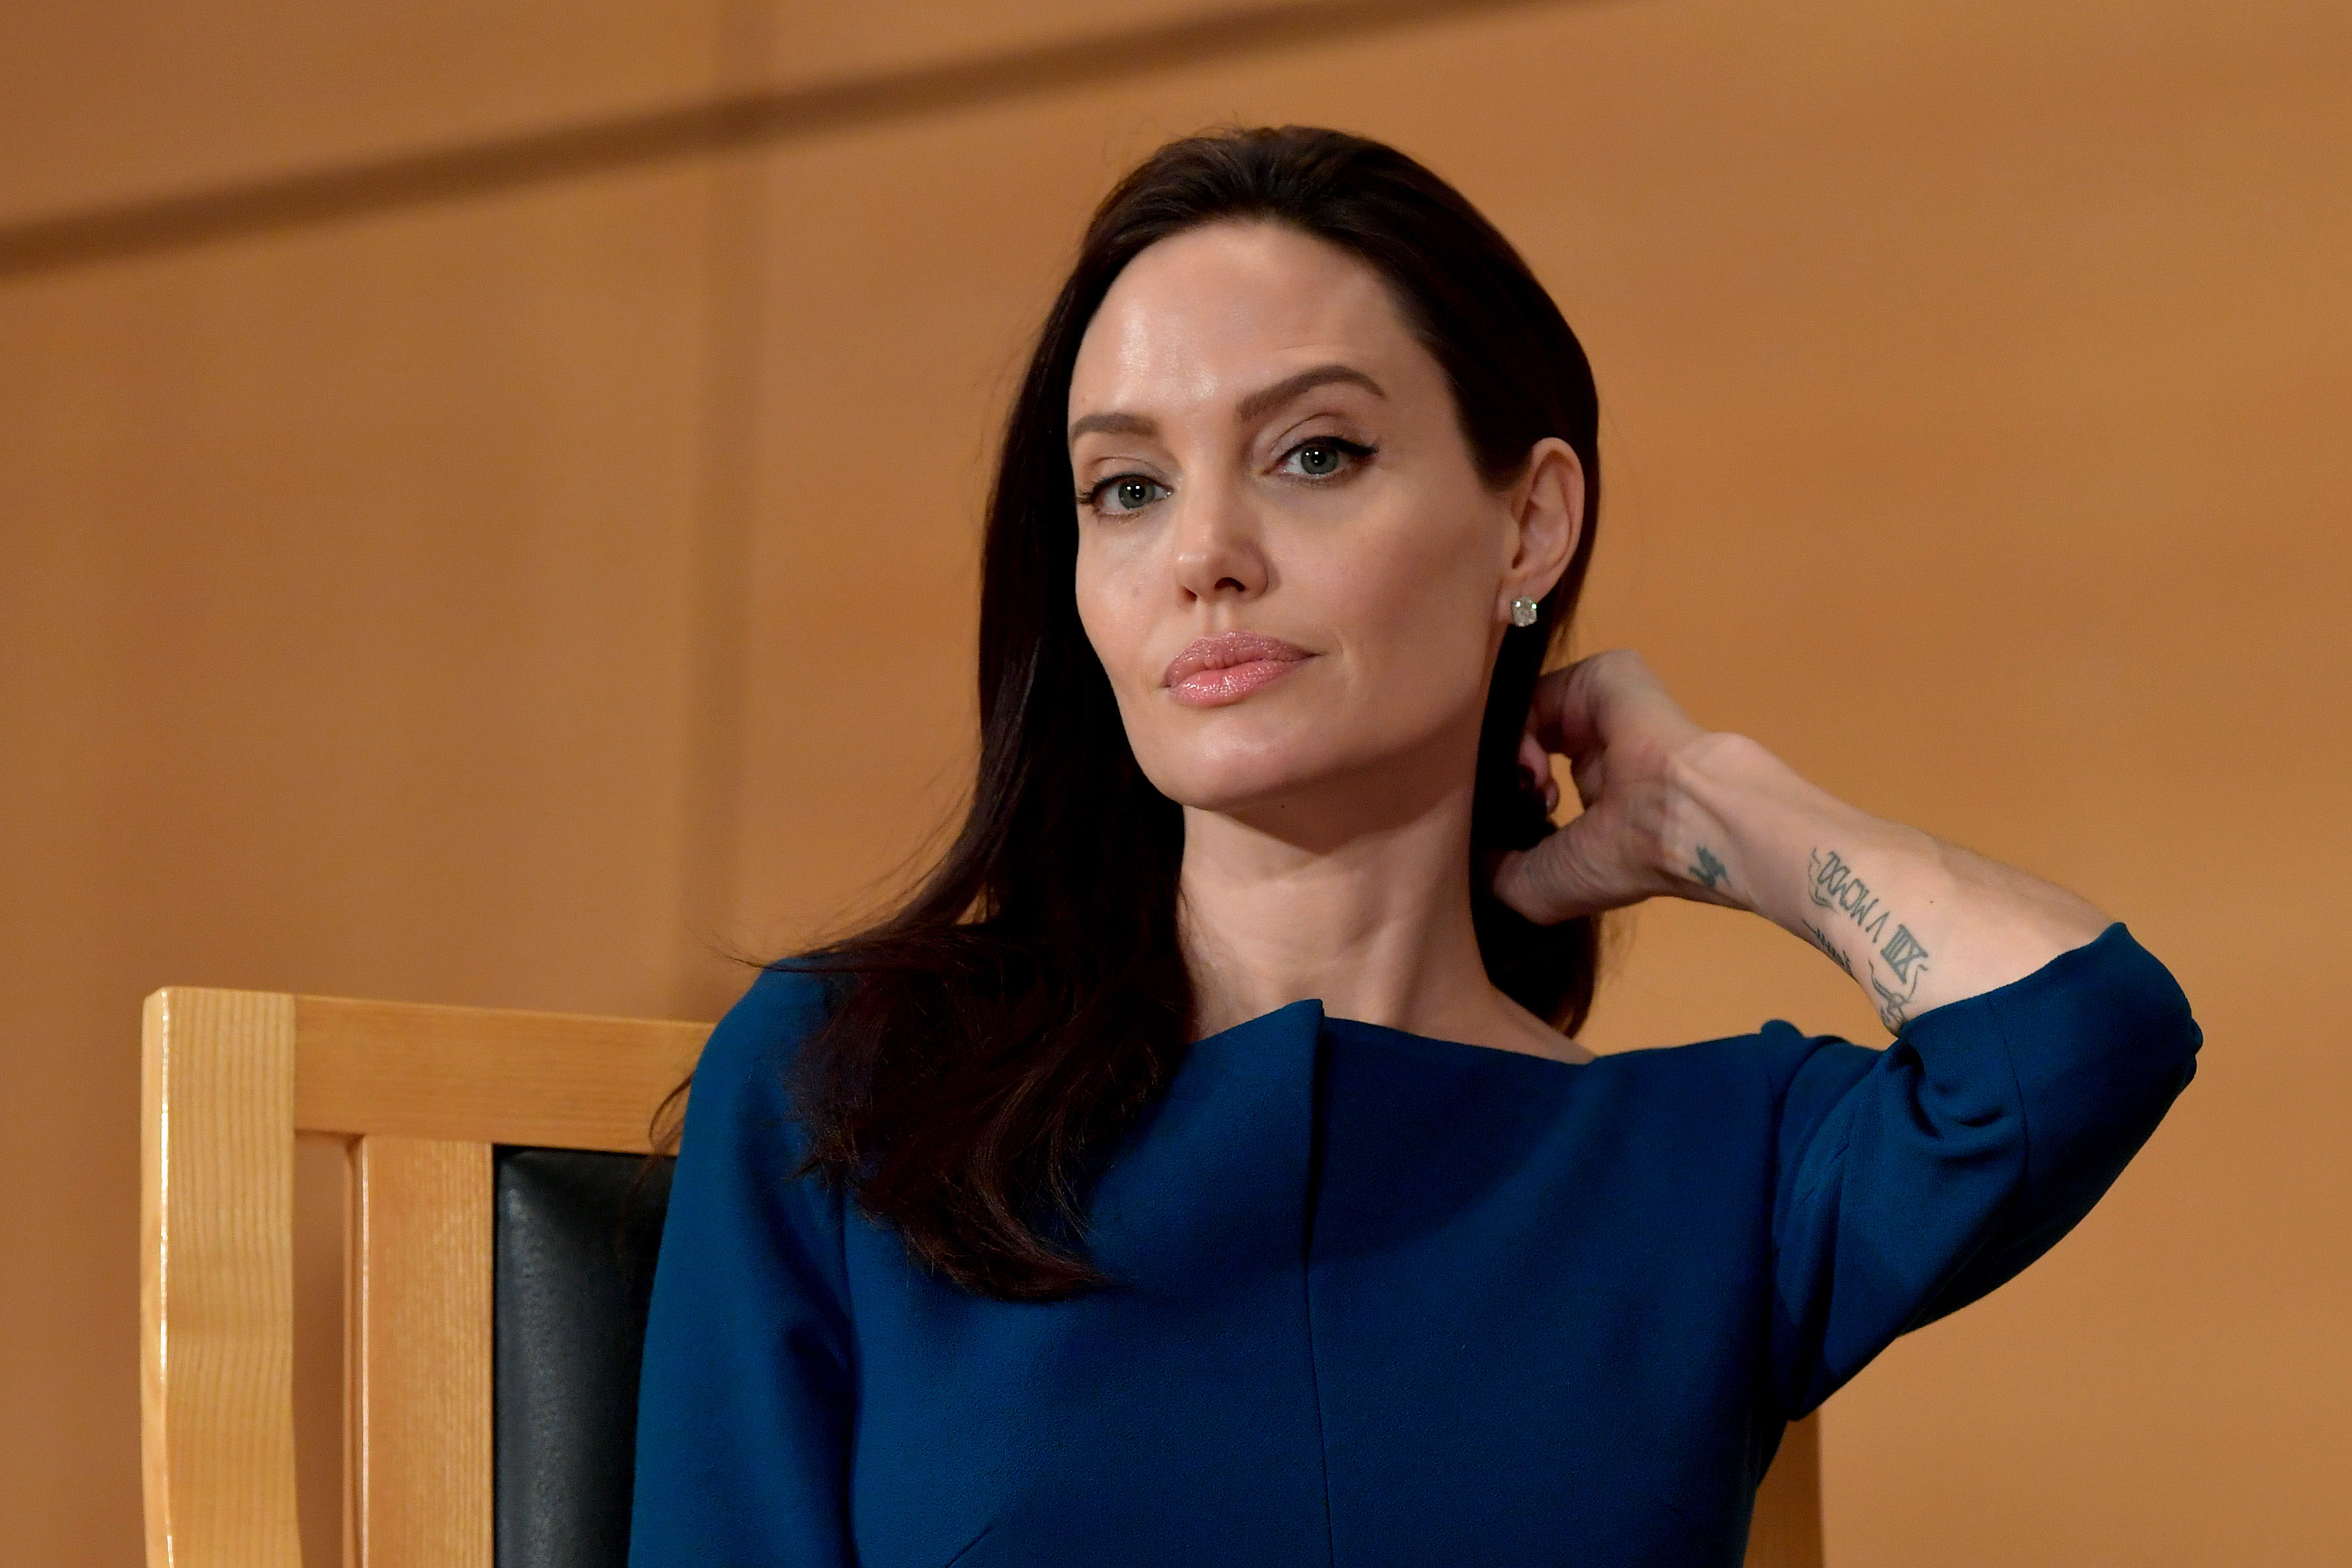 Angelina Jolie Bravely Reveals She Had A DoubleMastectomy recommendations